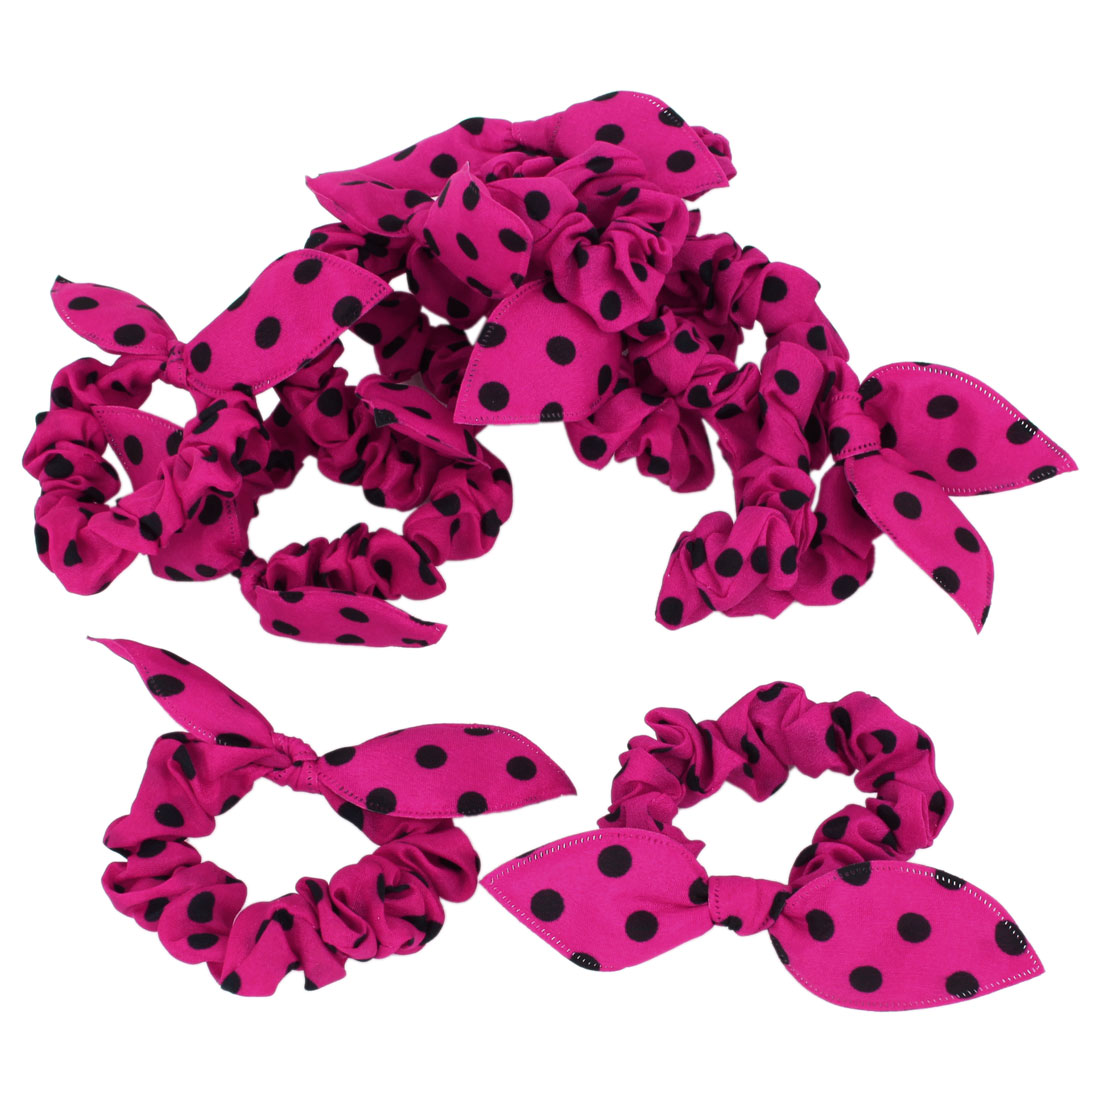 Lady Black Dot Print Rabbit Ear Elastic Hair Tie Ponytail Holder Fuchsia 10 Pcs